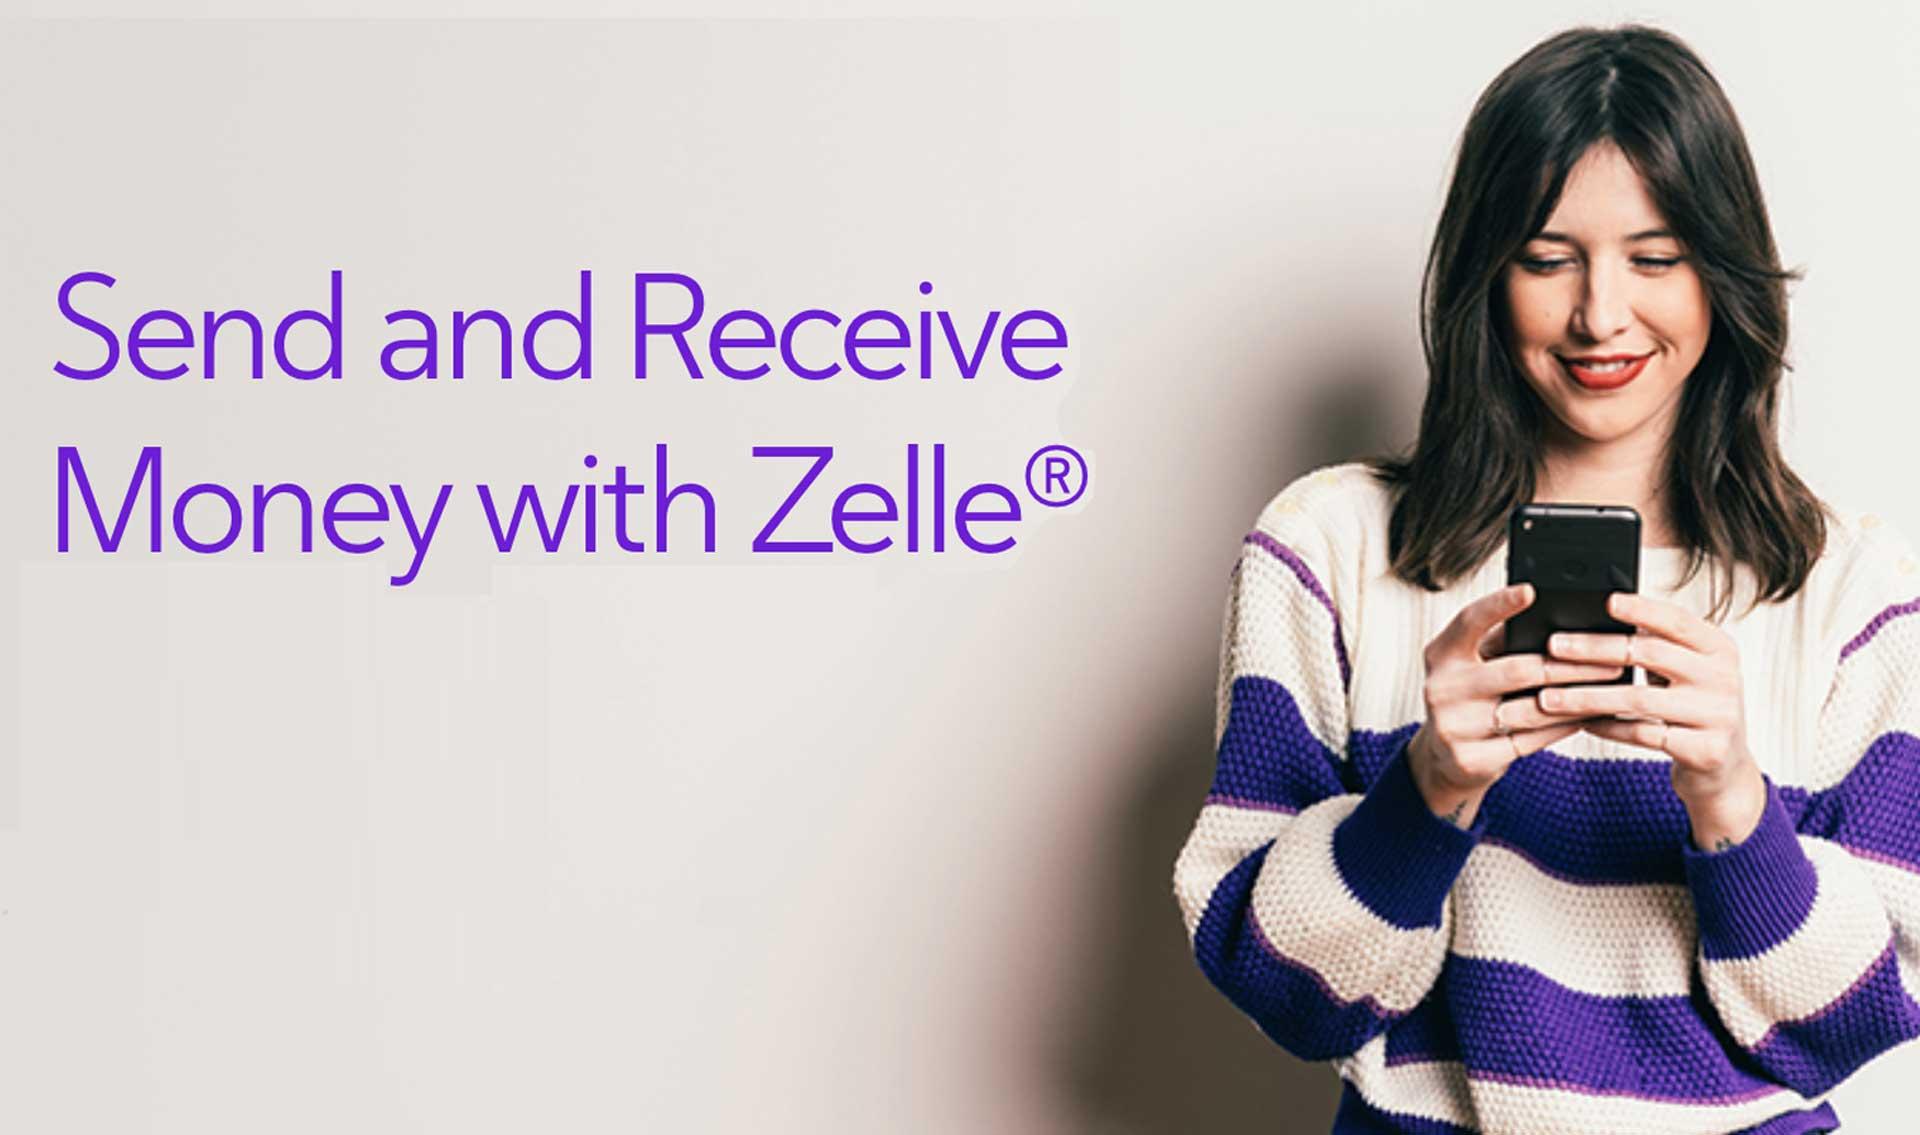 You can send money with Zelle